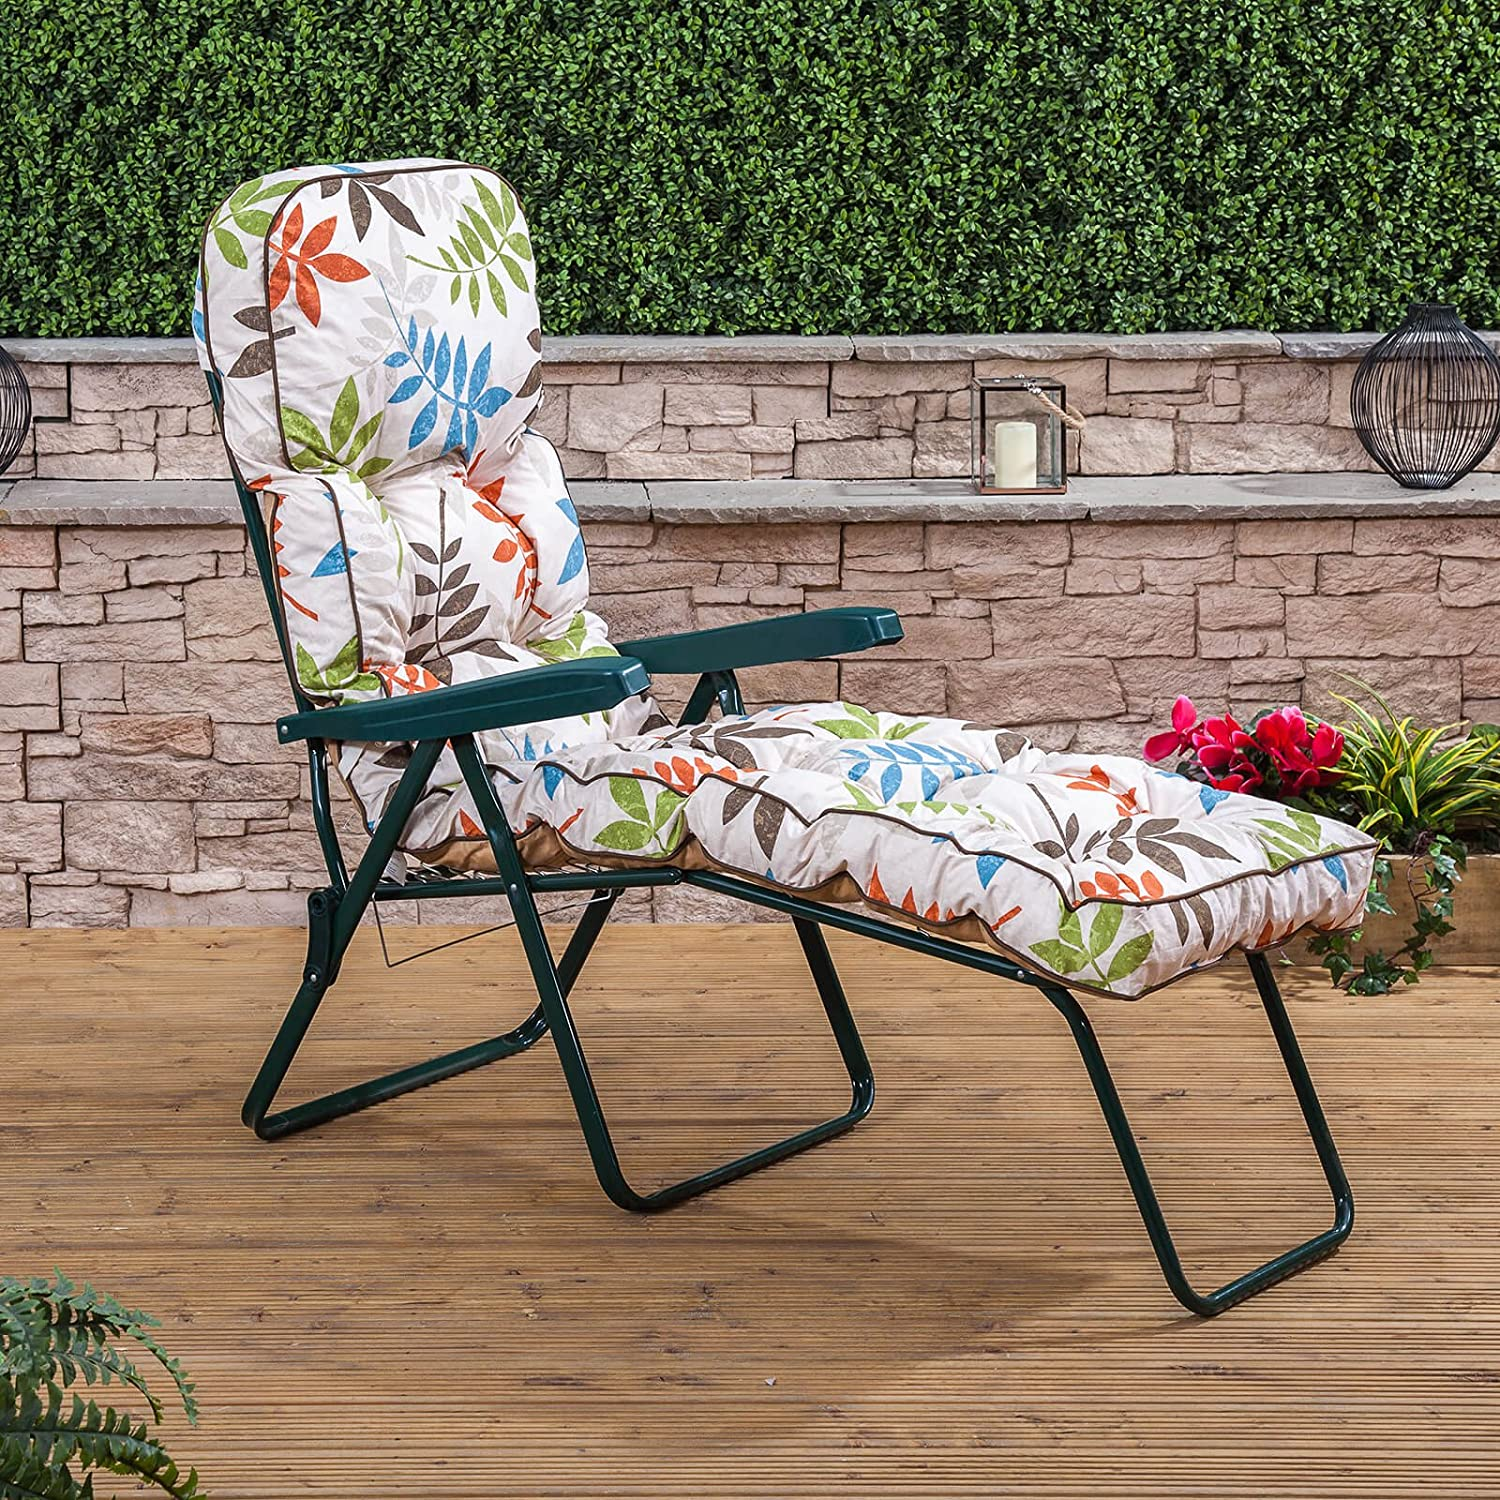 Alfresia Garden Sun Lounger – Green Adjustable Multi Position Foldable Frame with Classic Cushion in Choice of Prints (Blue)